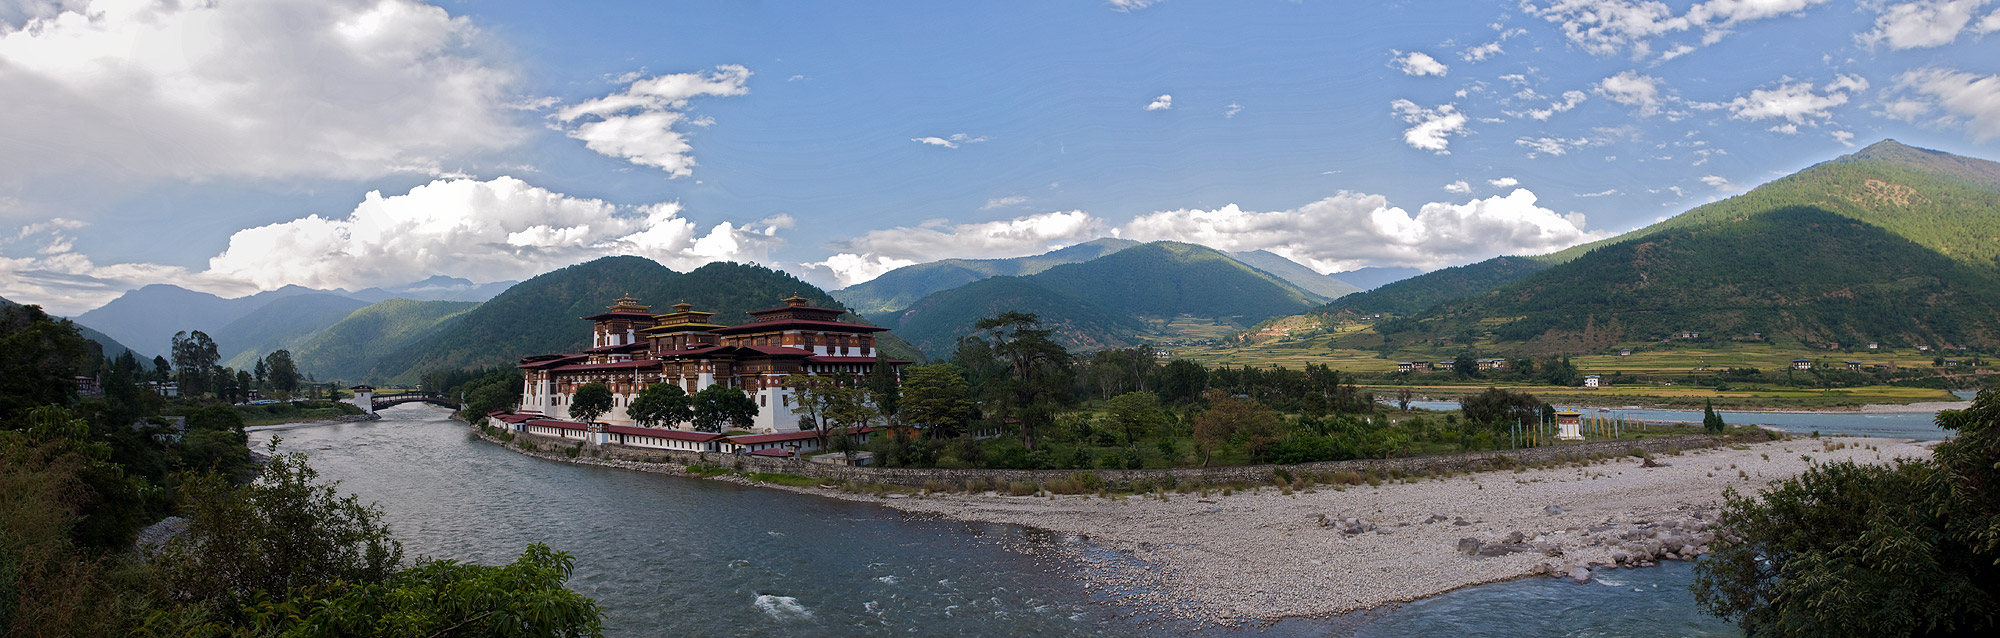 Constructed by Zhabdrung (Shabdrung) Ngawang Namgyal in 1637–38 this is the second oldest and second largest dzong in Bhutan and one of its most majestic structures. The Dzong is located at the confluence of the Pho Chhu (father) and Mo Chhu (mother) rivers in the Punakha–Wangdue valley.Nikon D300, 17-35mm(A stitched panorama of five images)